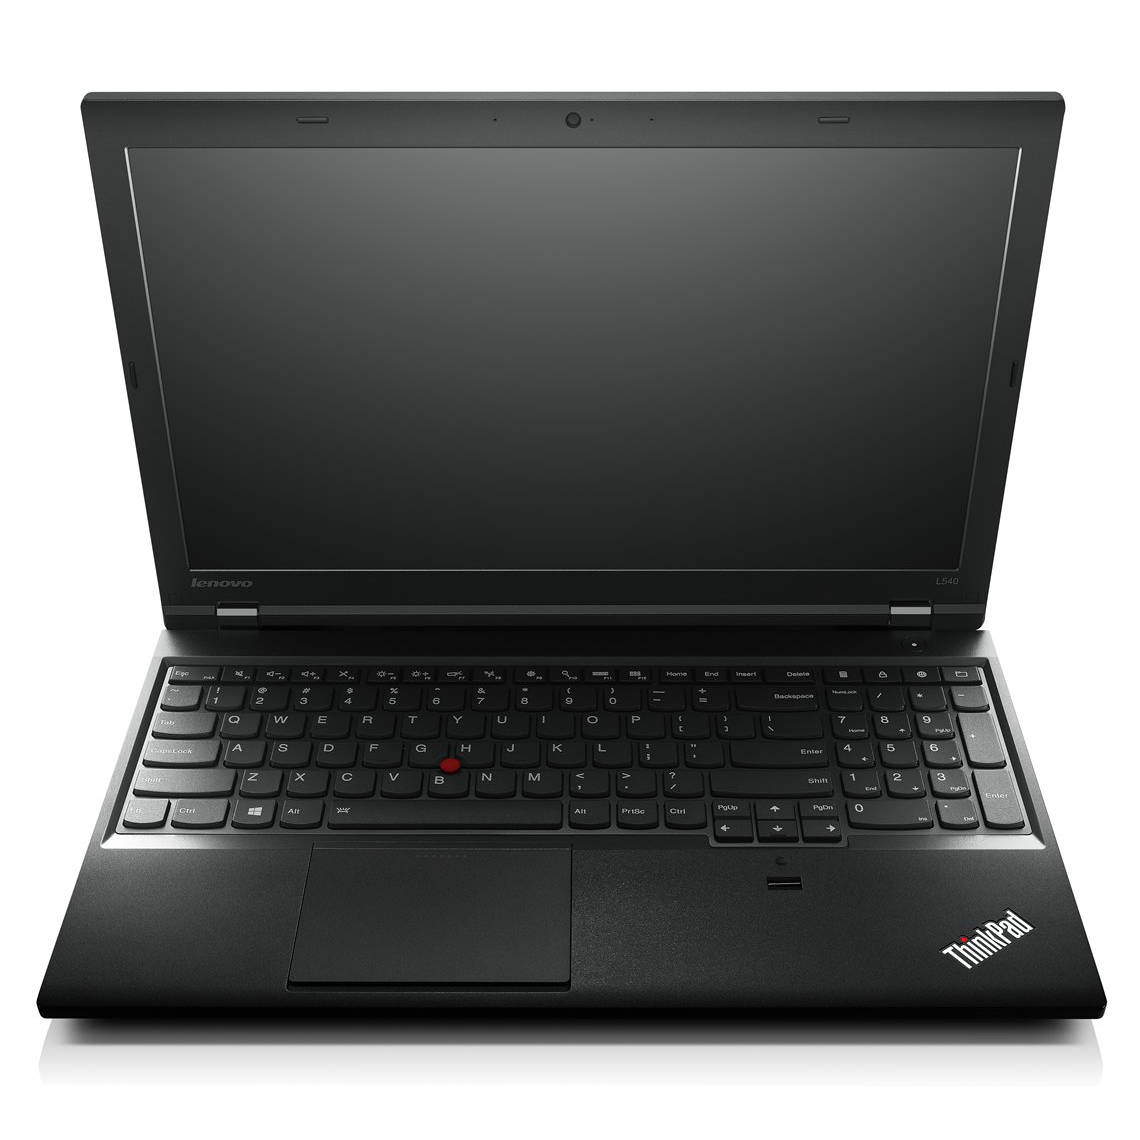 lenovo thinkpad l540 20av0033fr 20av0033fr achat vente pc portable sur. Black Bedroom Furniture Sets. Home Design Ideas